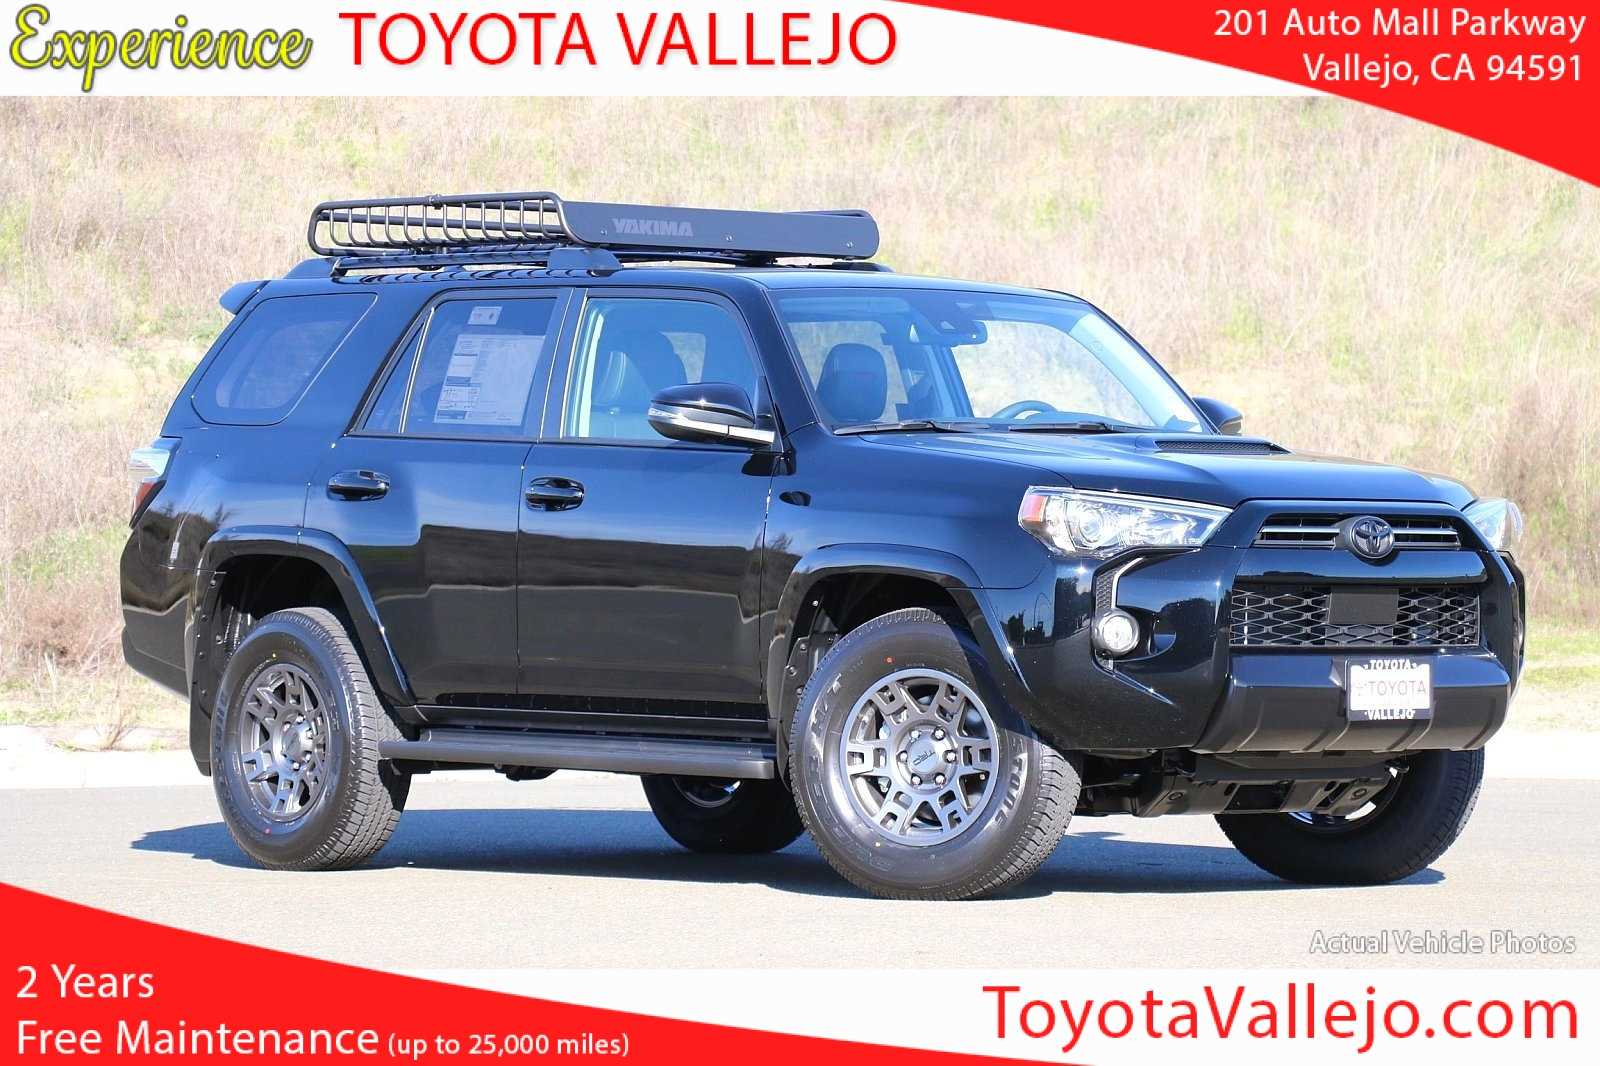 New 2020 Toyota 4Runner 4.0L Venture Special Edition